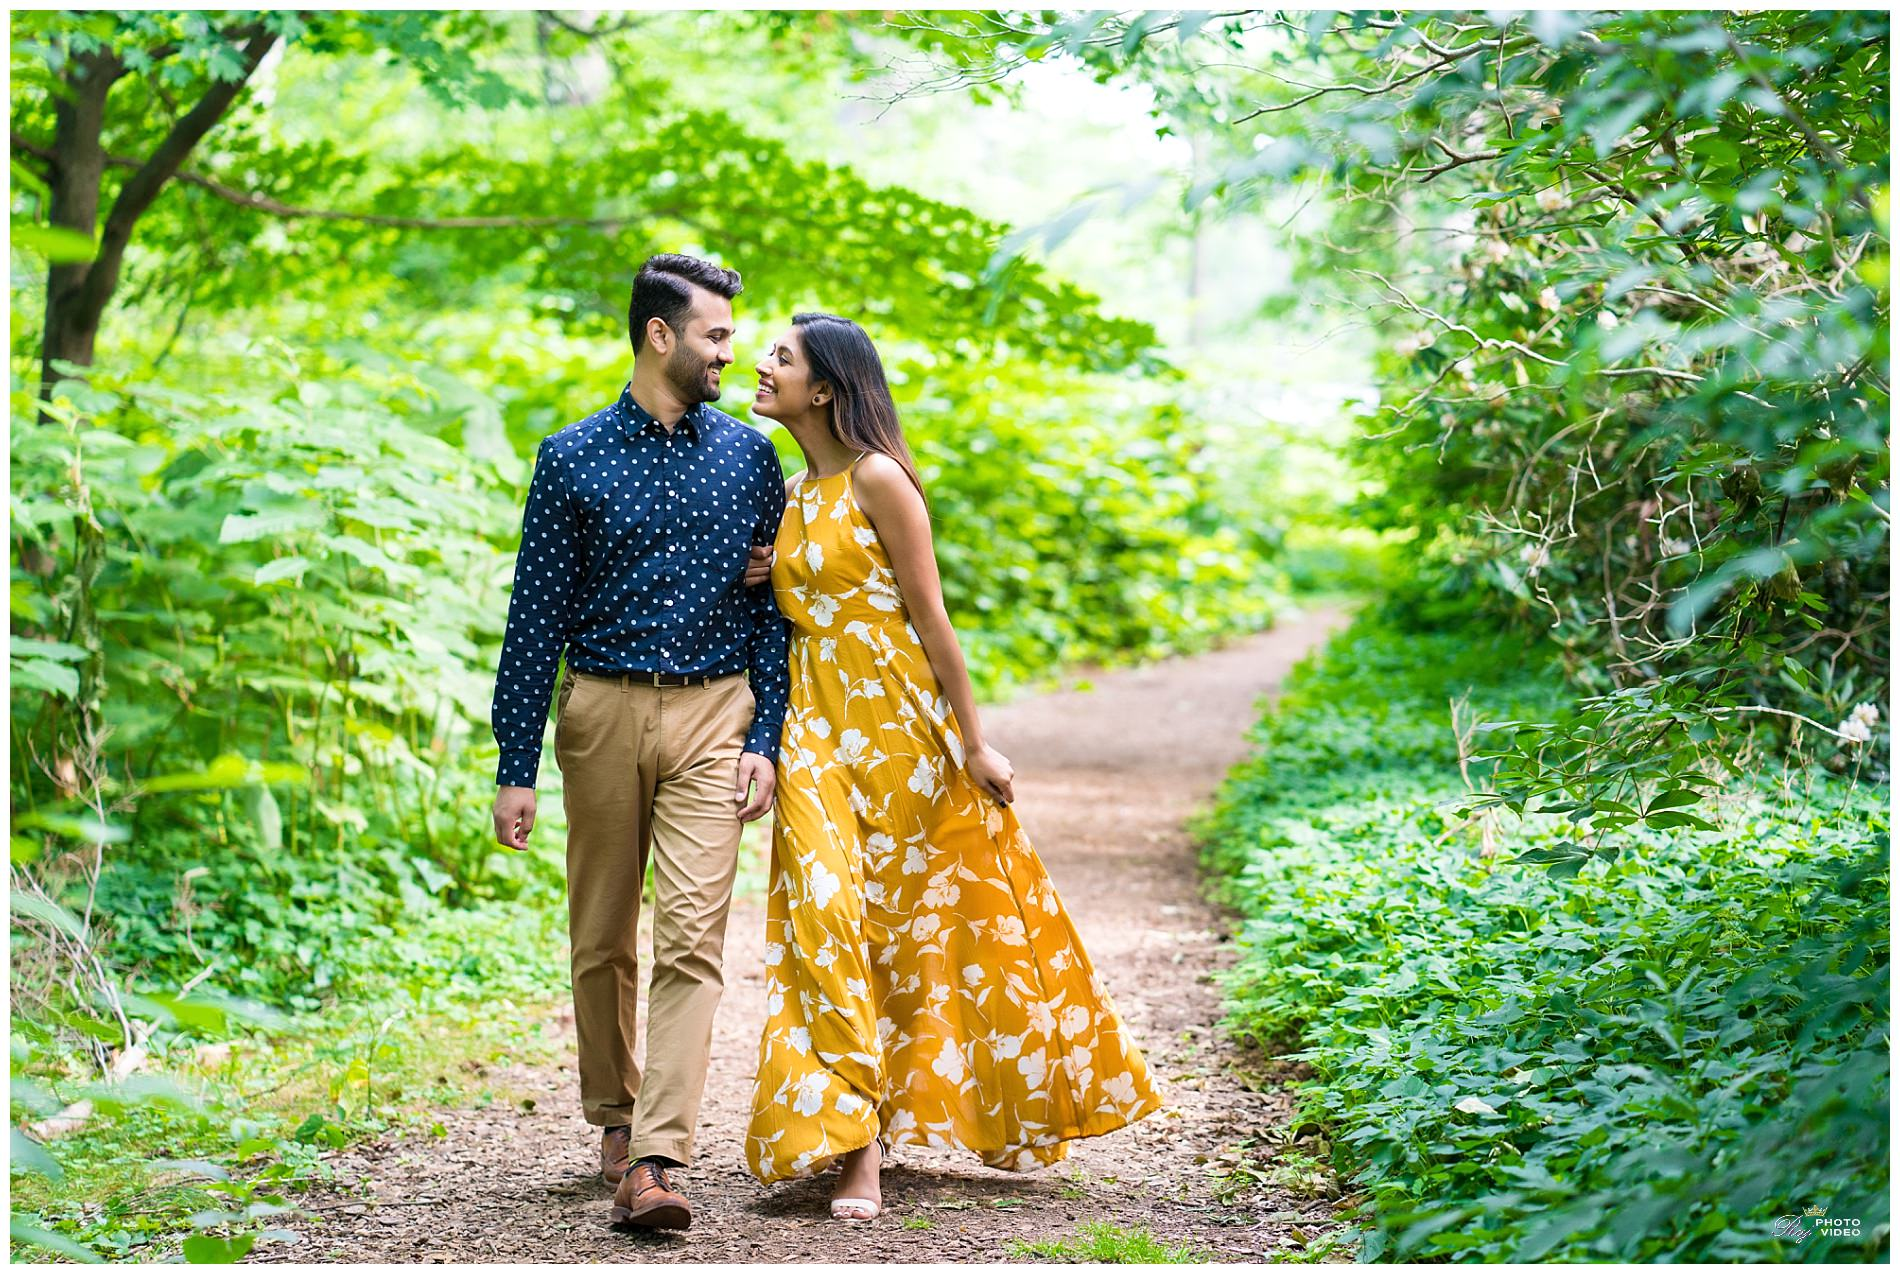 Elizabeth-Park-Rose-Garden-Hartford-CT-Engagement-Shoot-Pratiti-Suraj-20.jpg